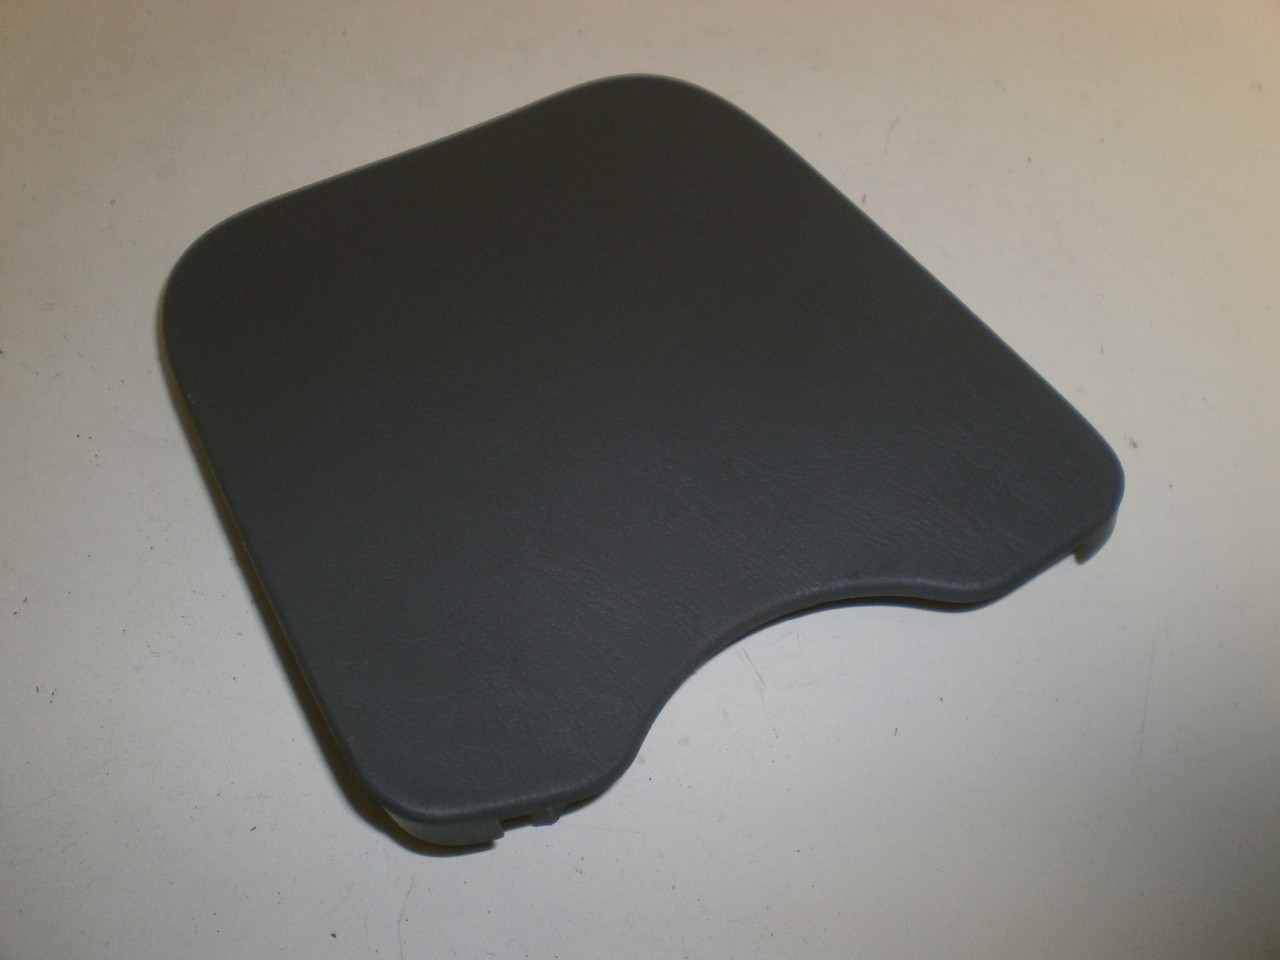 2000-2004 Ford Focus Dash Gray Fuse Panel Door Lid Cover Trim 98AB-14A075-BDW on 2000 ford focus neutral safety switch, 2000 ford focus ac compressor, 2000 ford focus ignition relay, 2000 ford focus water pump replacement, 2000 ford focus fan relay, 2005 ford focus zx4 fuse box, 2000 ford focus brake light switch, 2010 ford flex fuse box, 2005 ford crown victoria fuse box, 2000 ford focus frame, 1985 ford bronco fuse box, 2000 ford focus evap canister, 1993 ford mustang fuse box, 2000 mitsubishi galant es fuse box, 2000 ford focus brake booster, 2008 ford taurus fuse box, 2000 ford focus speedometer, 2000 volkswagen golf fuse box, 2000 dodge ram 2500 fuse box, 2000 chevrolet malibu fuse box,